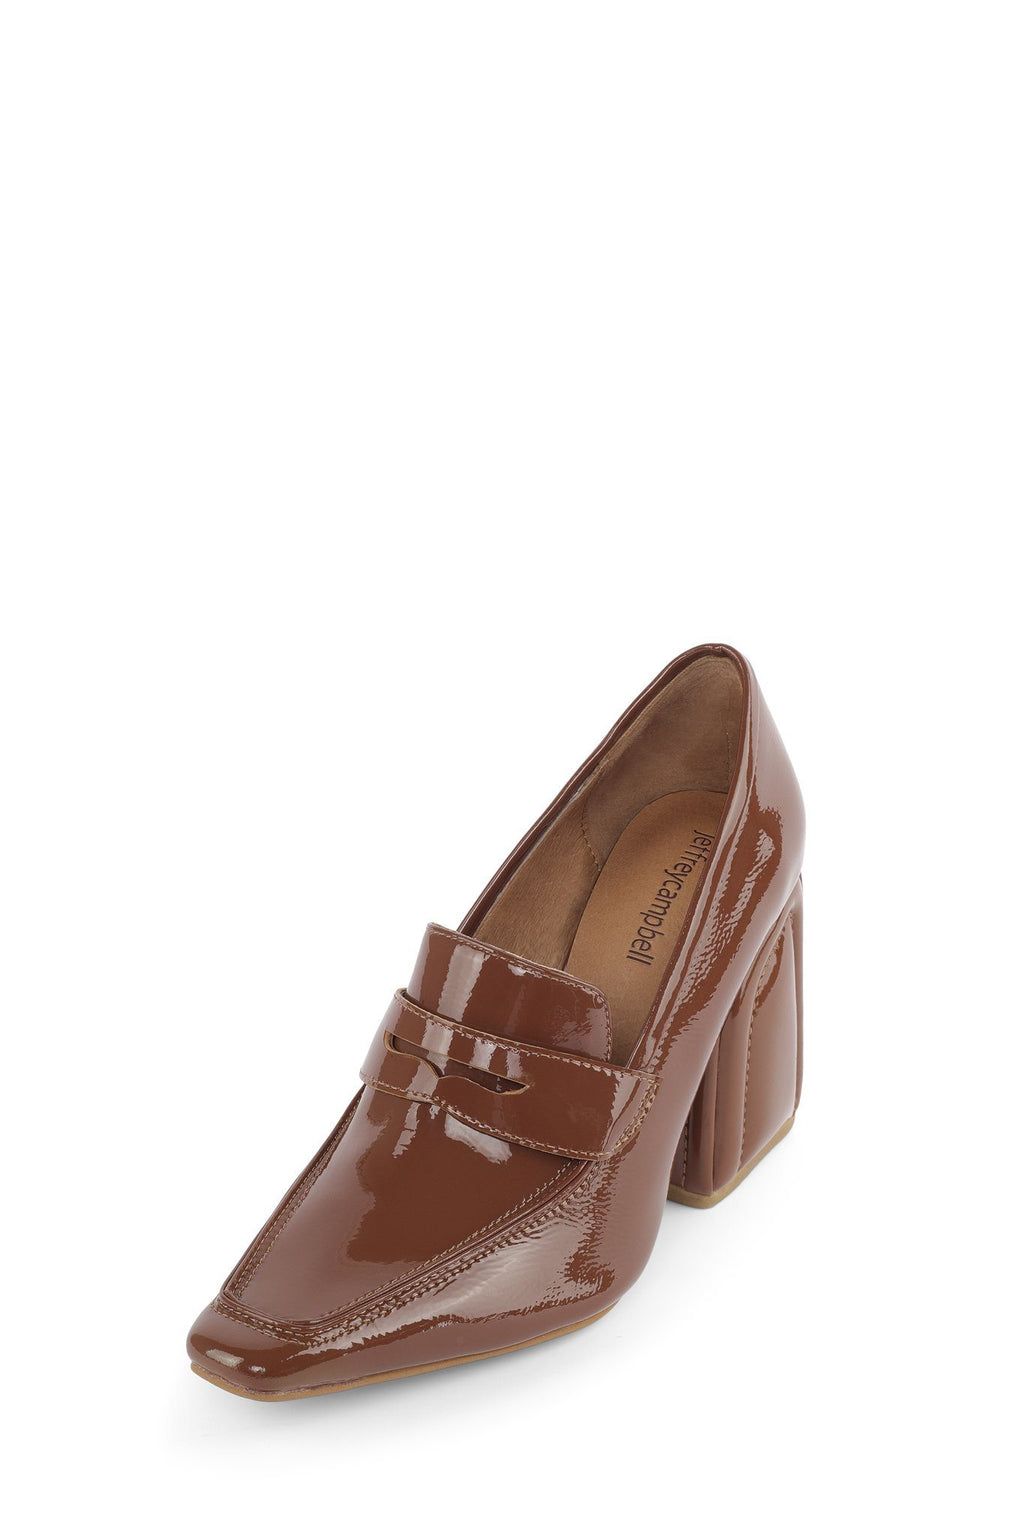 BRAQUE Loafer HS